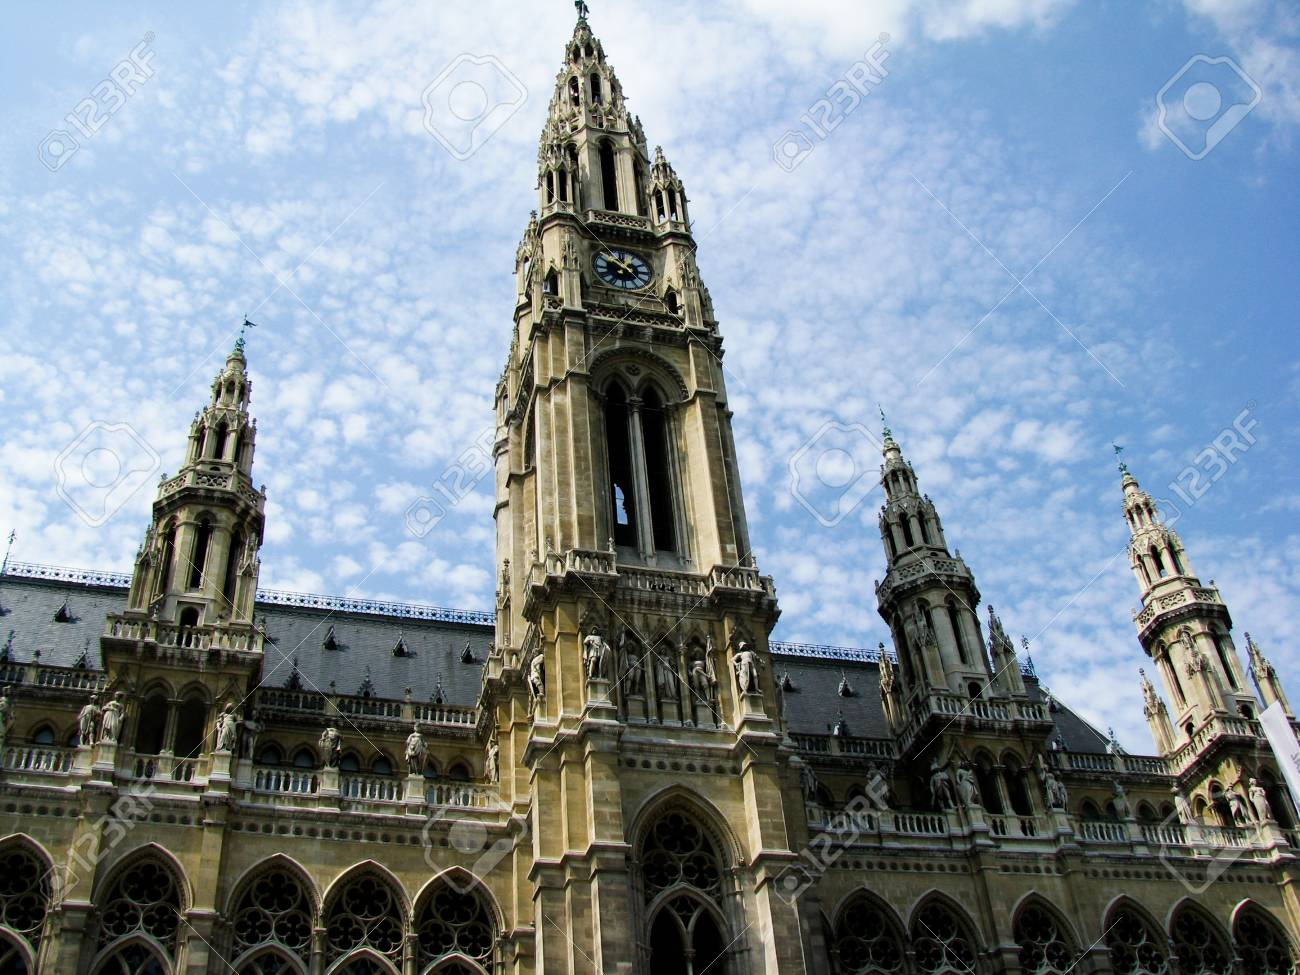 City Hall in Vienna - a famous architectural site of Austria. Stock Photo - 11879251